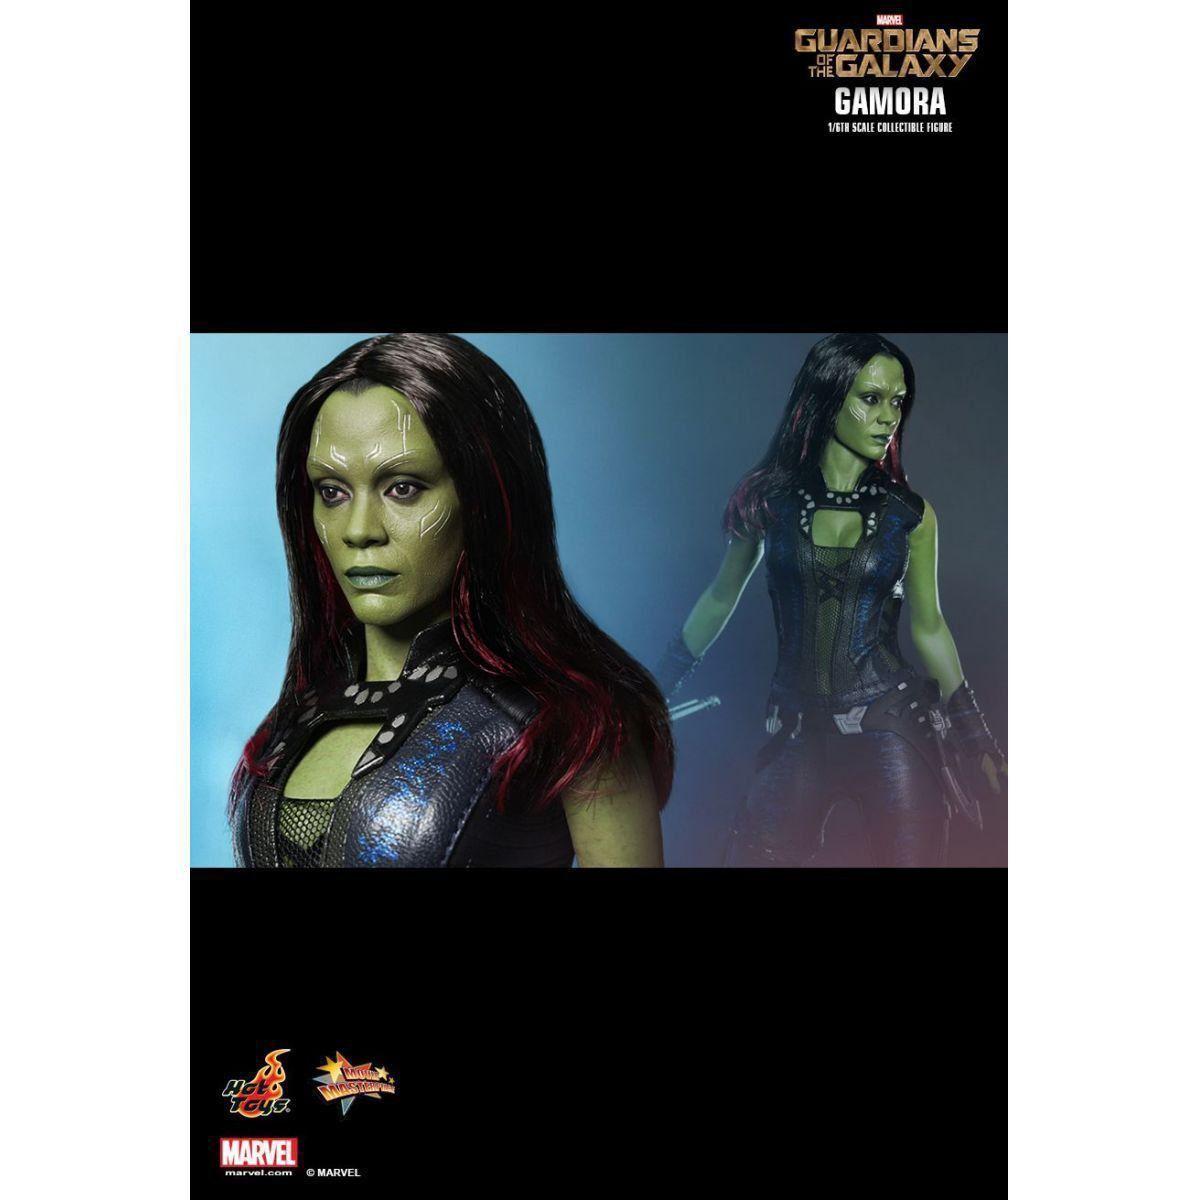 Action Figure Gamora: Guardiões da Galáxia (Guardians of the Galaxy) Escala 1/6 (MMS259) - Hot Toys